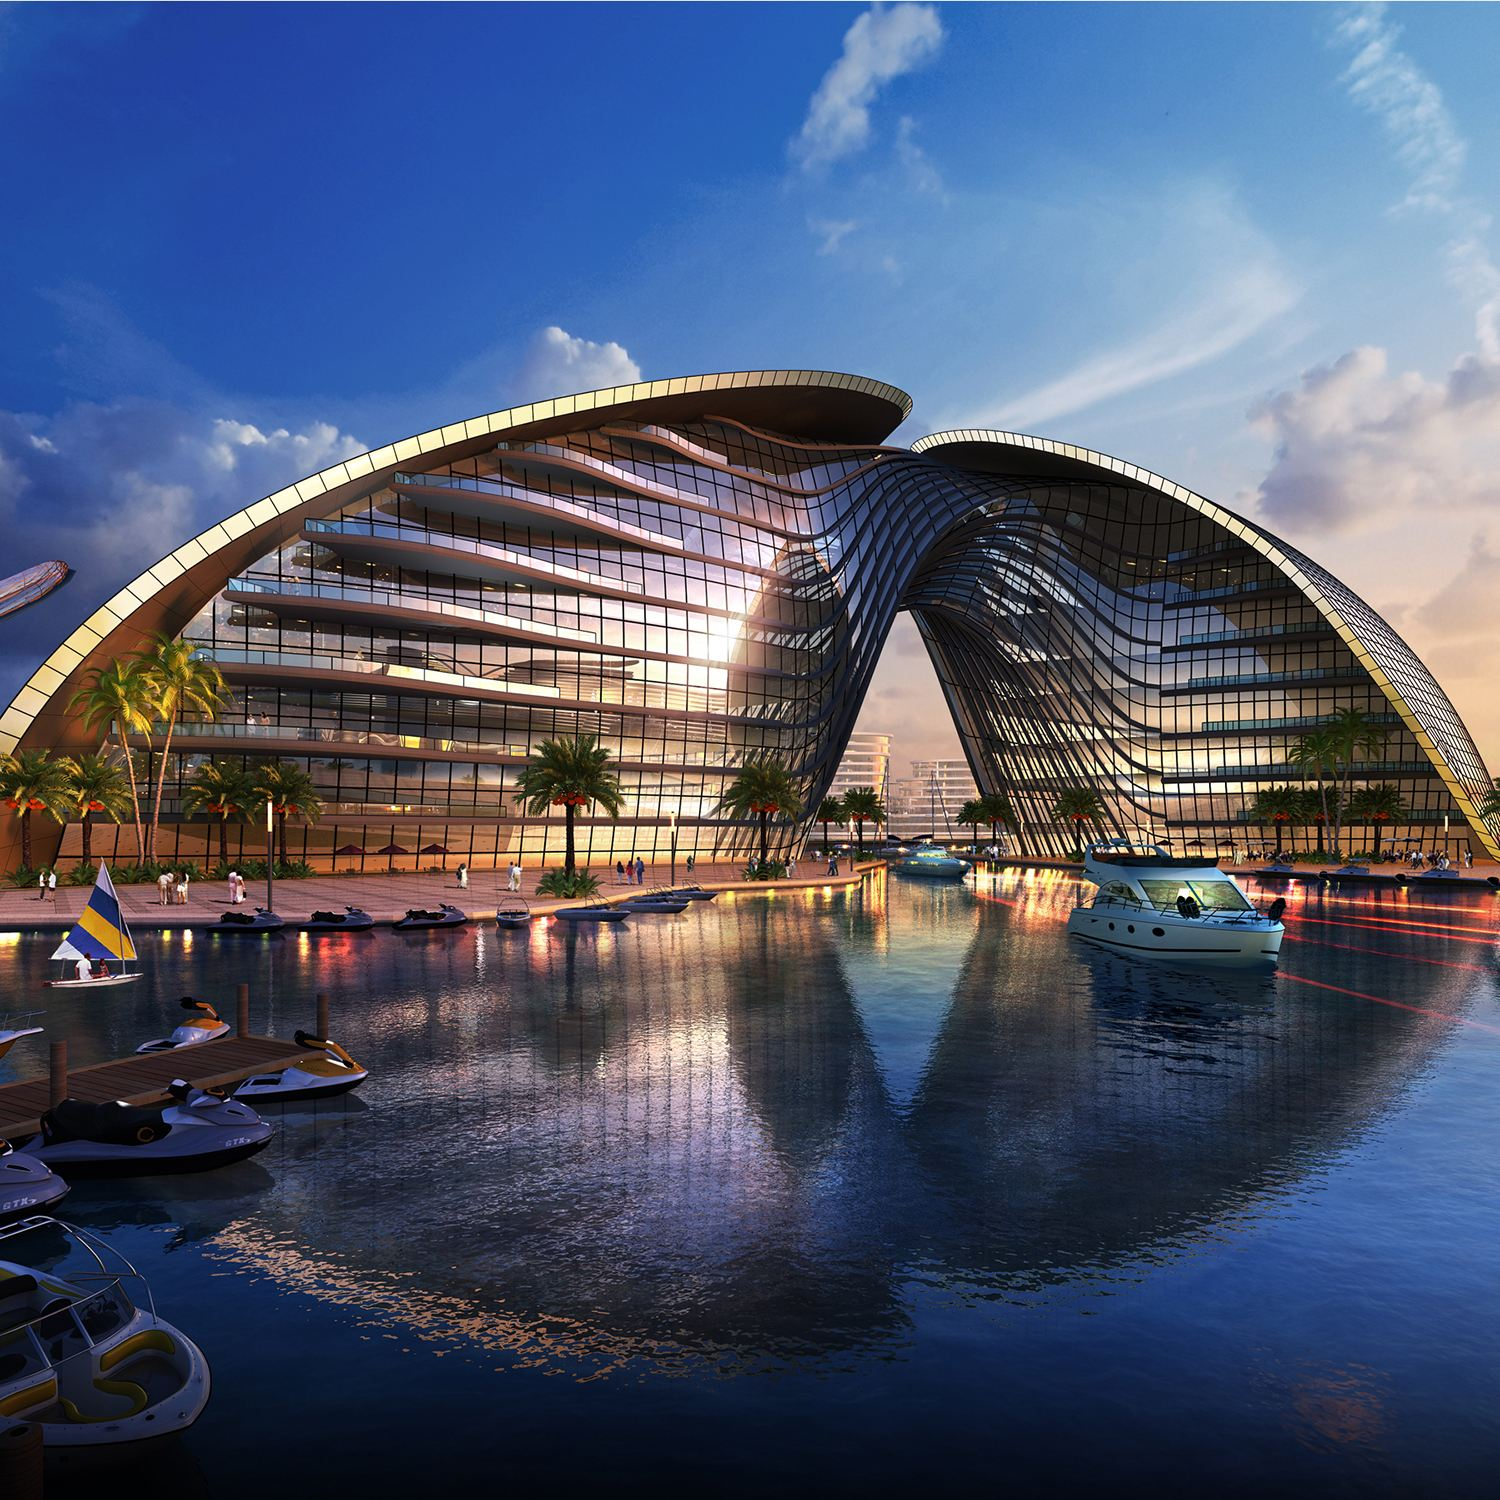 New Manila Bay City of Pearl Commercial Office, Hospitality, Resident by Hpa Architects Engineers and Development Consultants